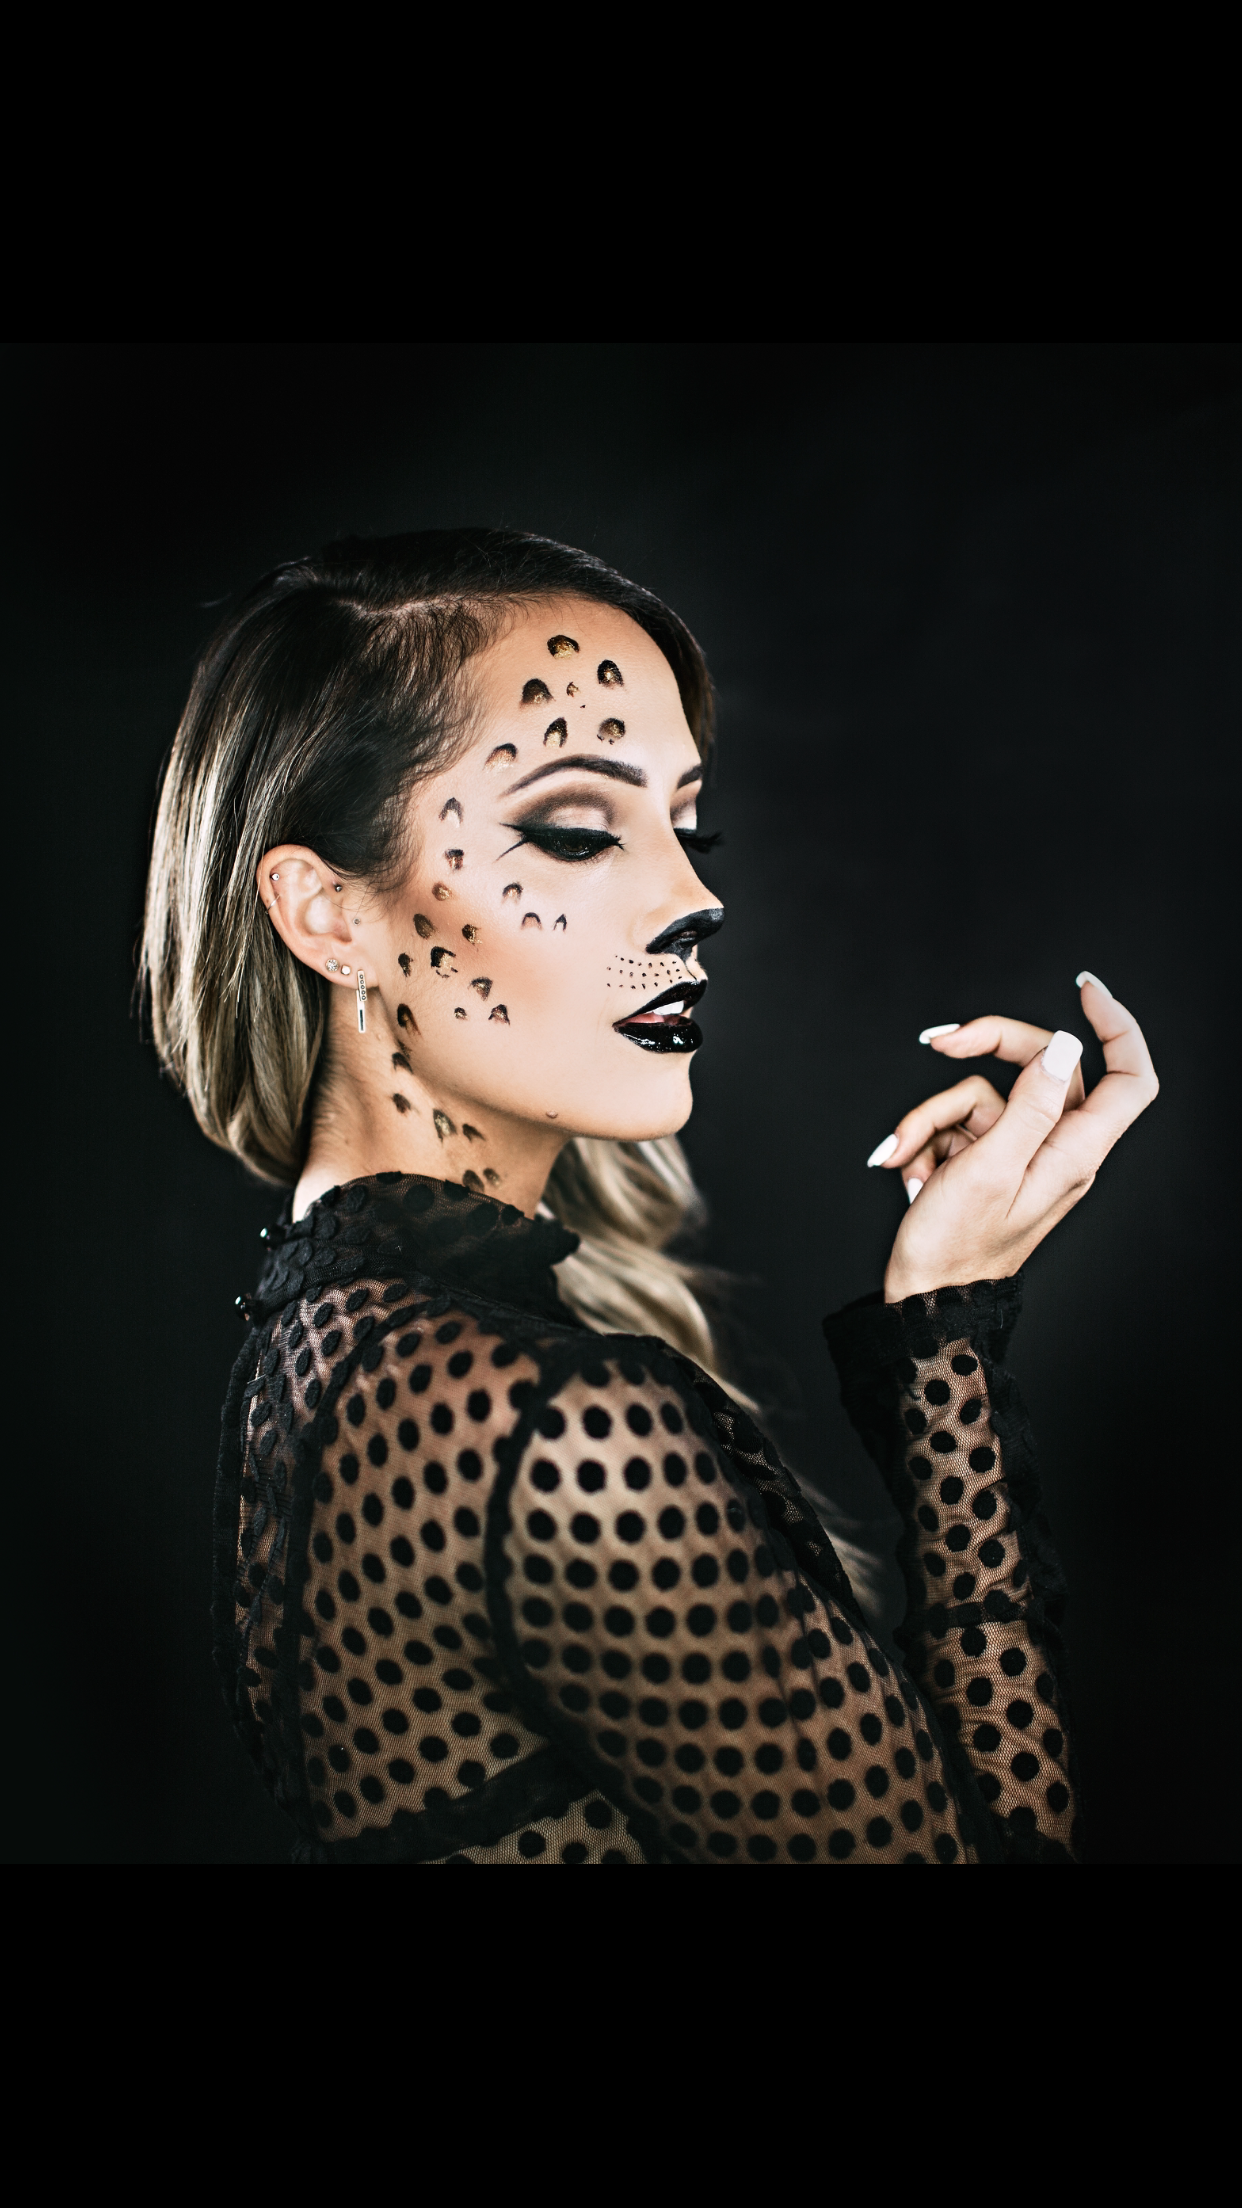 Make Up For Ever for Halloween Makeup http//rstyle.me/n